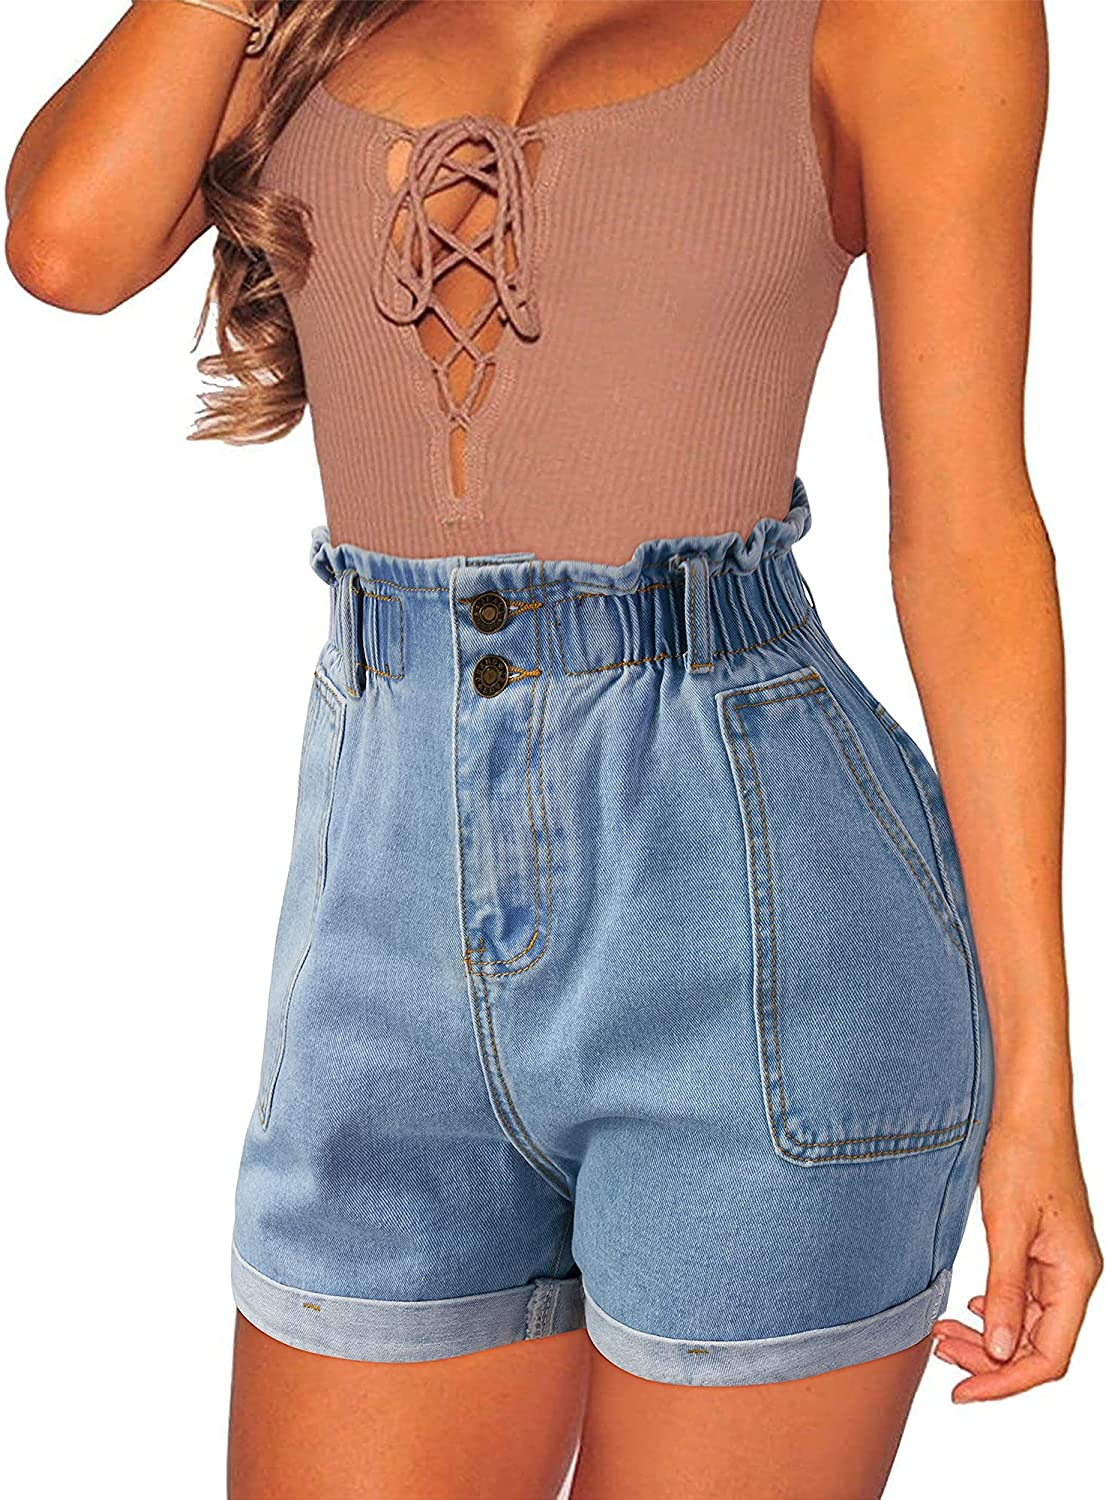 OUGES Women's Casual Ripped Denim Shorts Stretchy Frayed Raw Hem Shorts Jeans